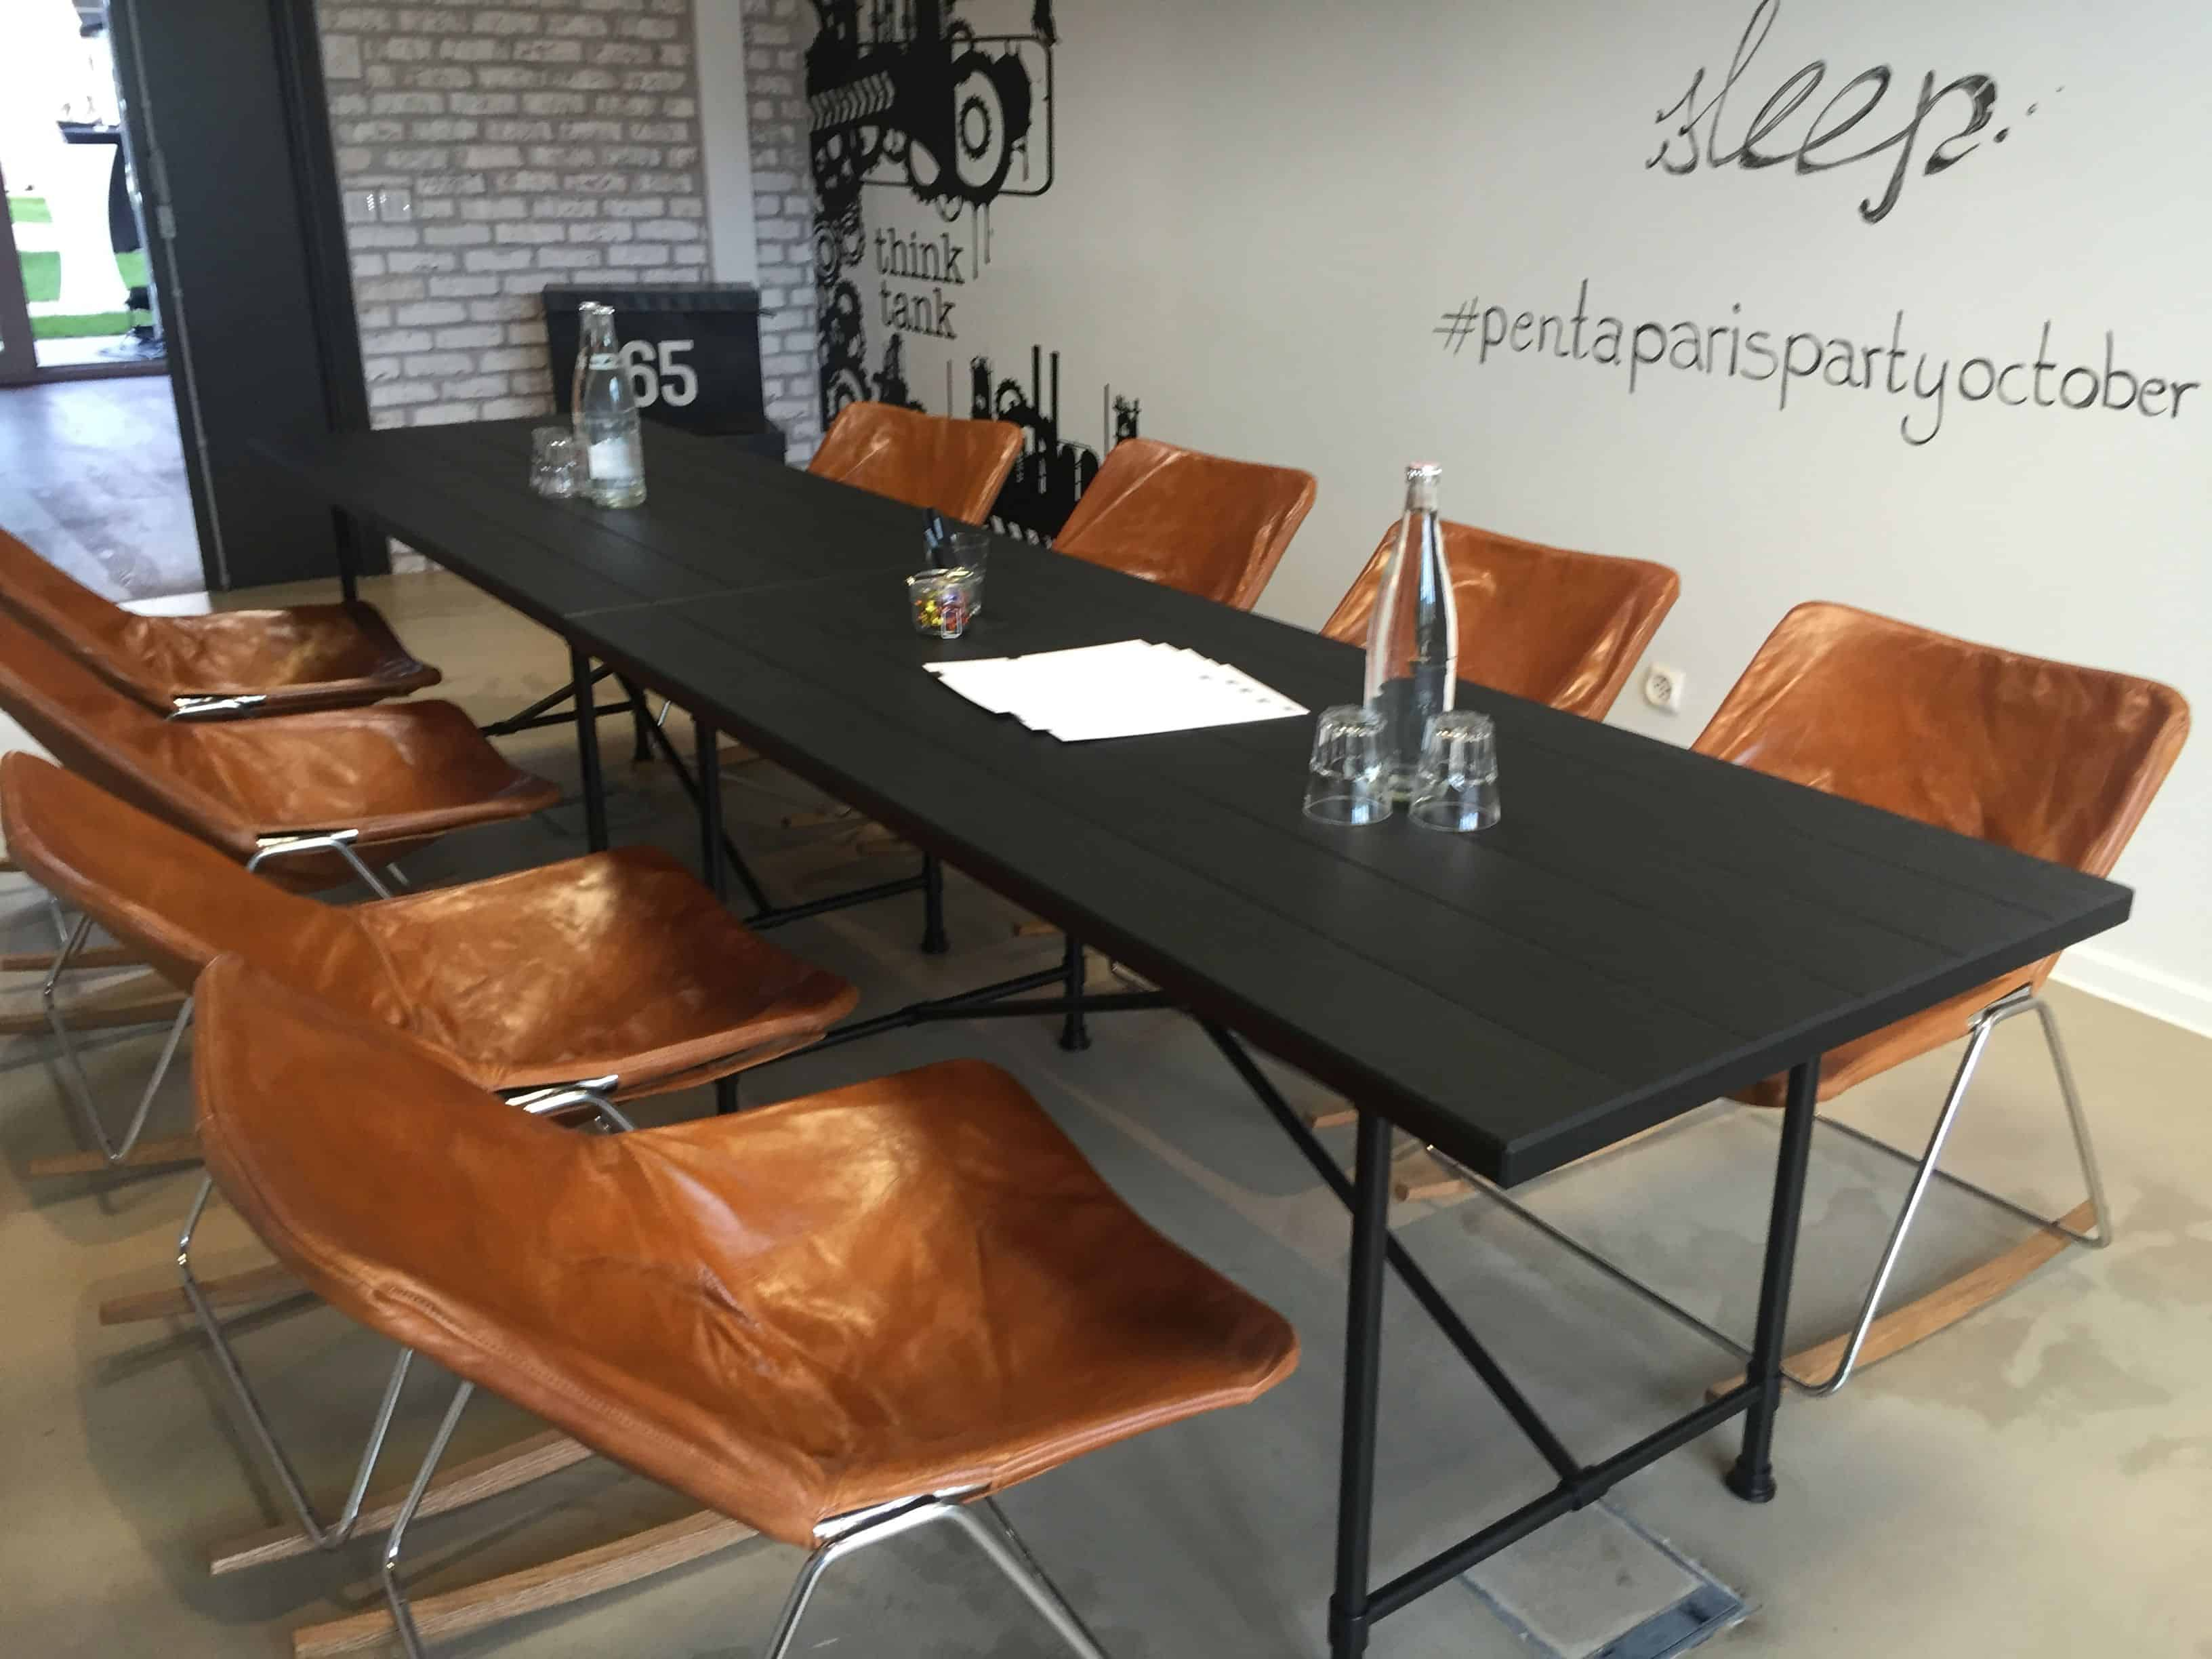 Playful conference rooms – pentahotel paris